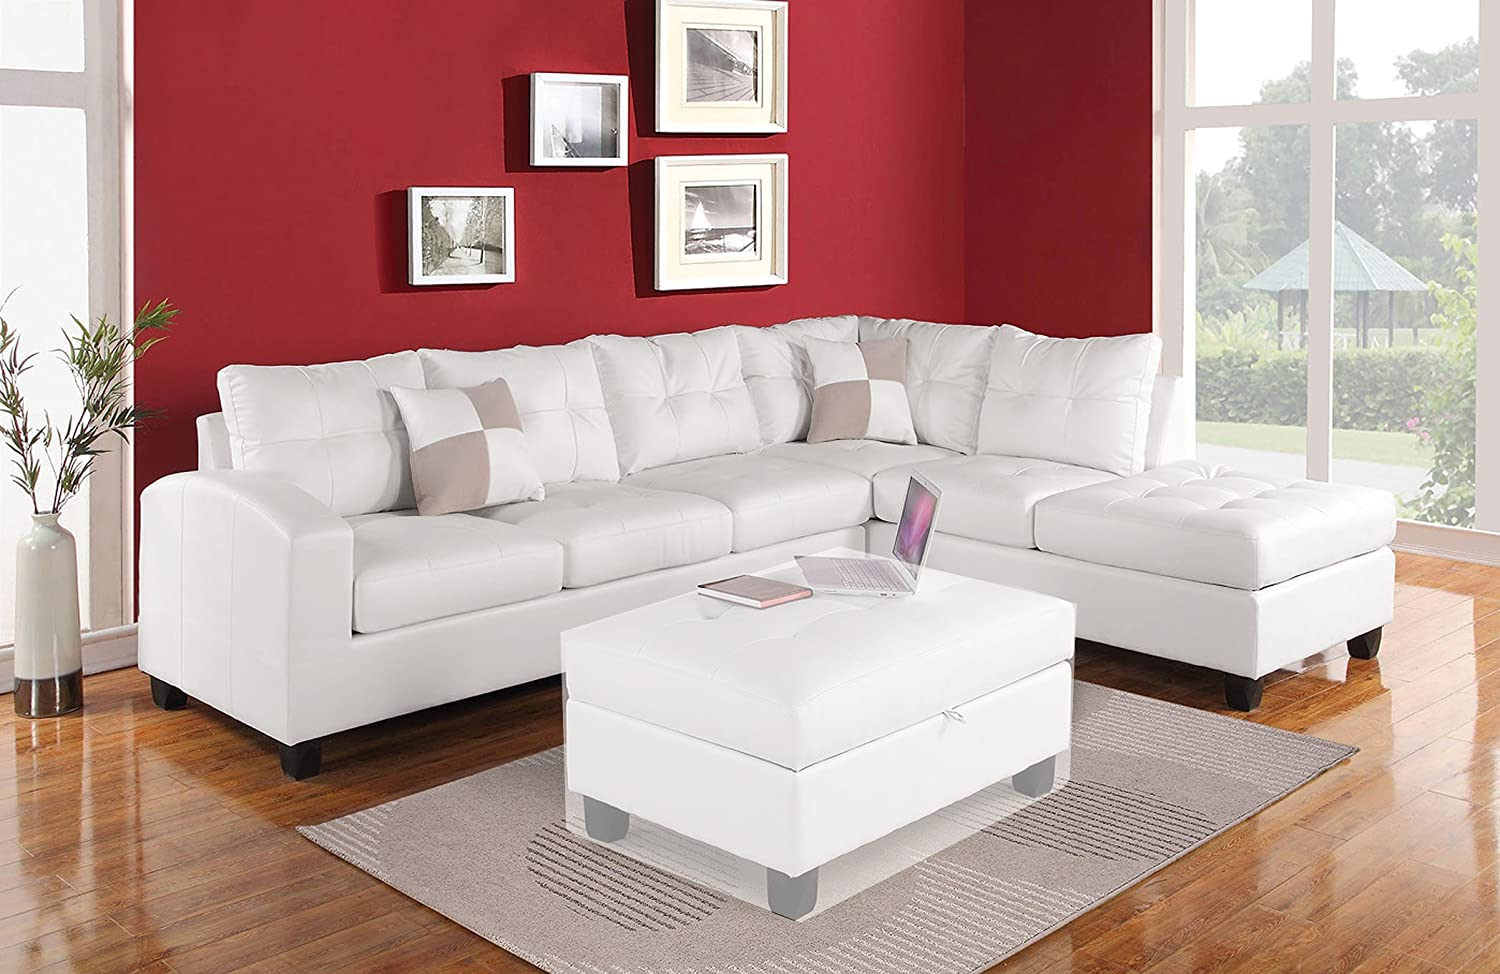 1PerfectChoice Kiva White Bonded Leather Reversal Sectional Sofa Set